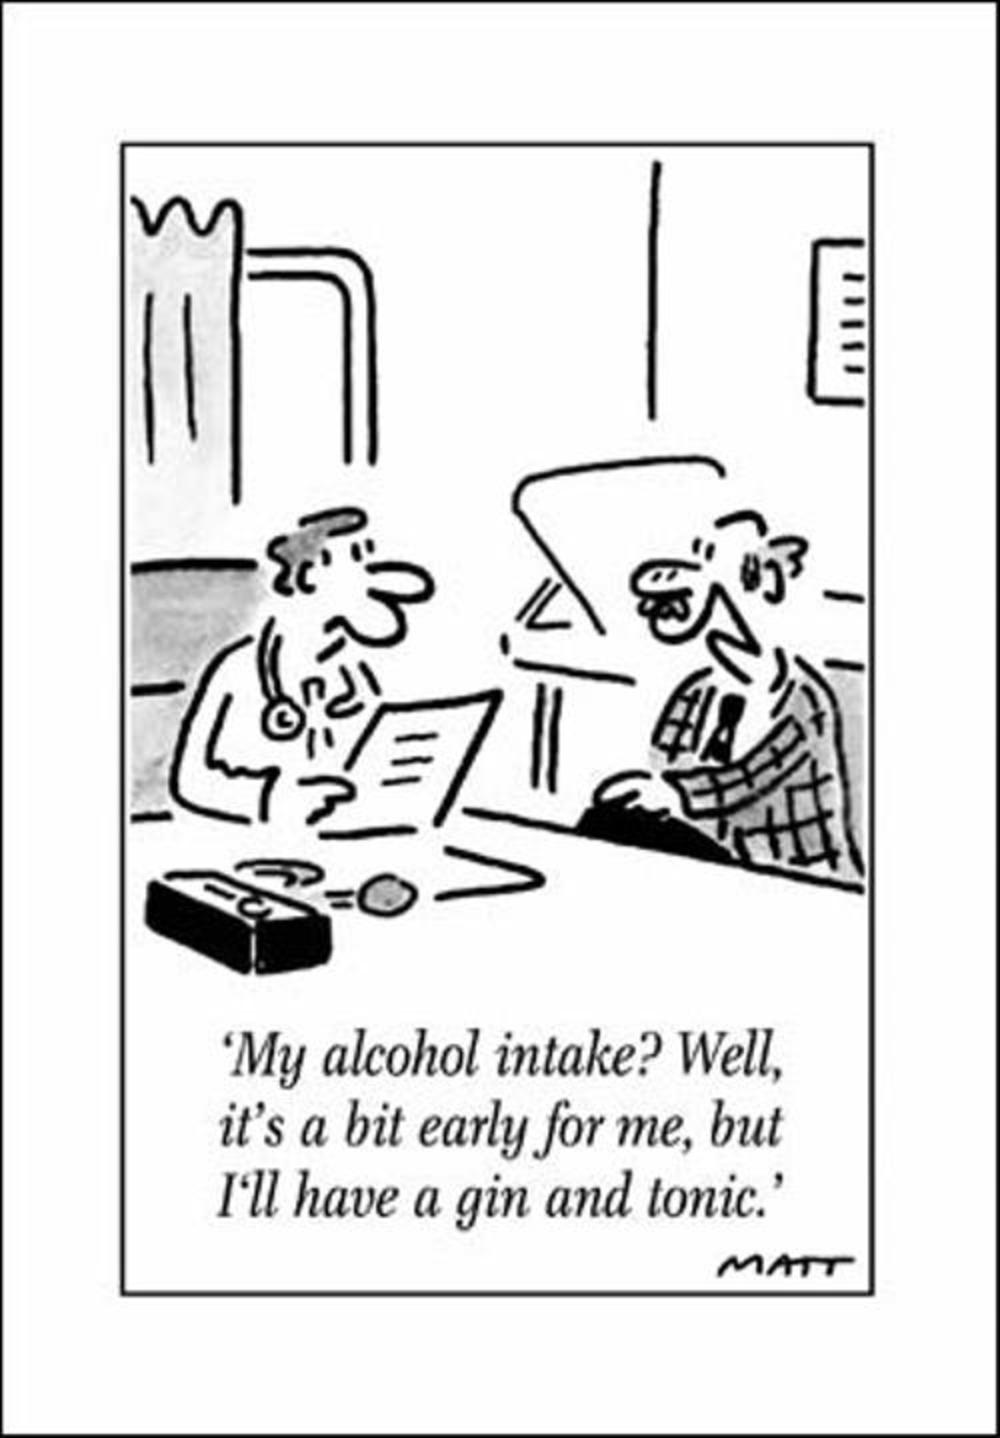 Alcohol intake funny matt greeting card cards love kates alcohol intake funny matt greeting card kristyandbryce Image collections